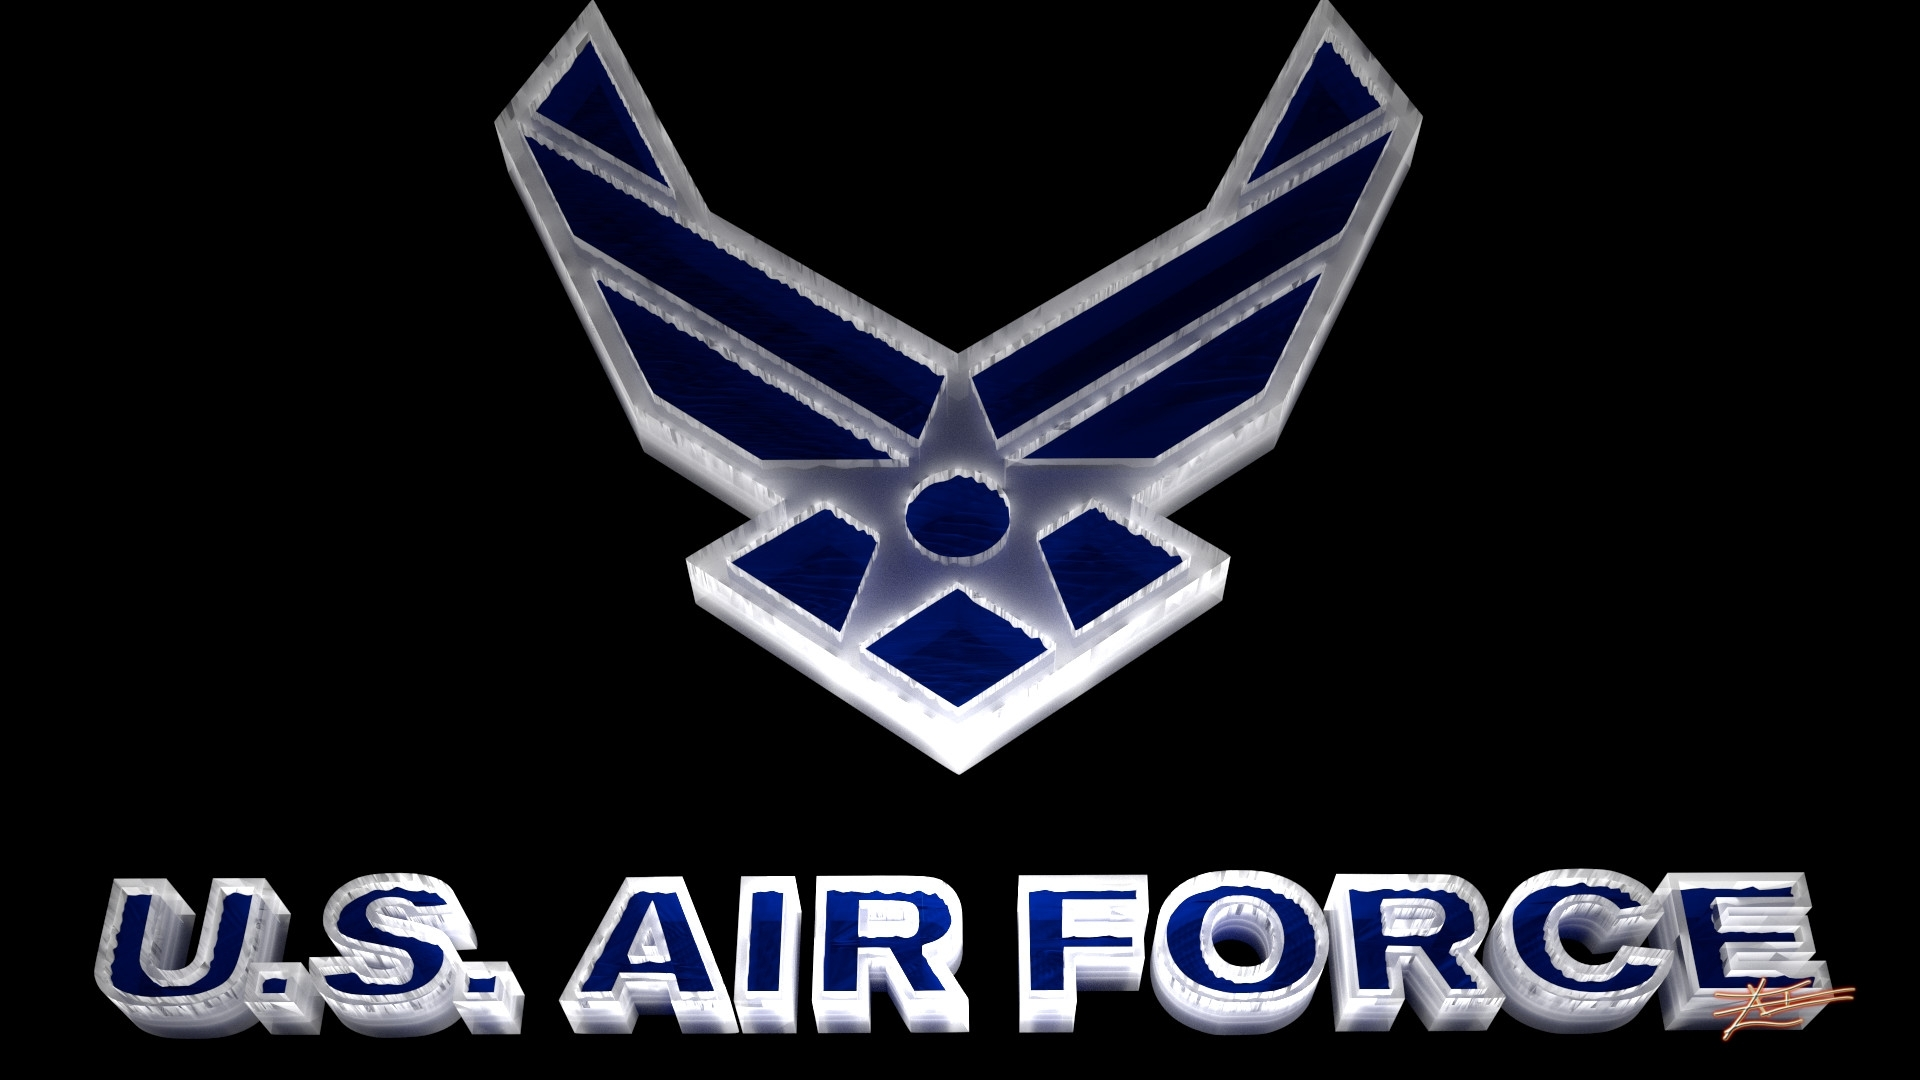 air force logo wallpaper ·①